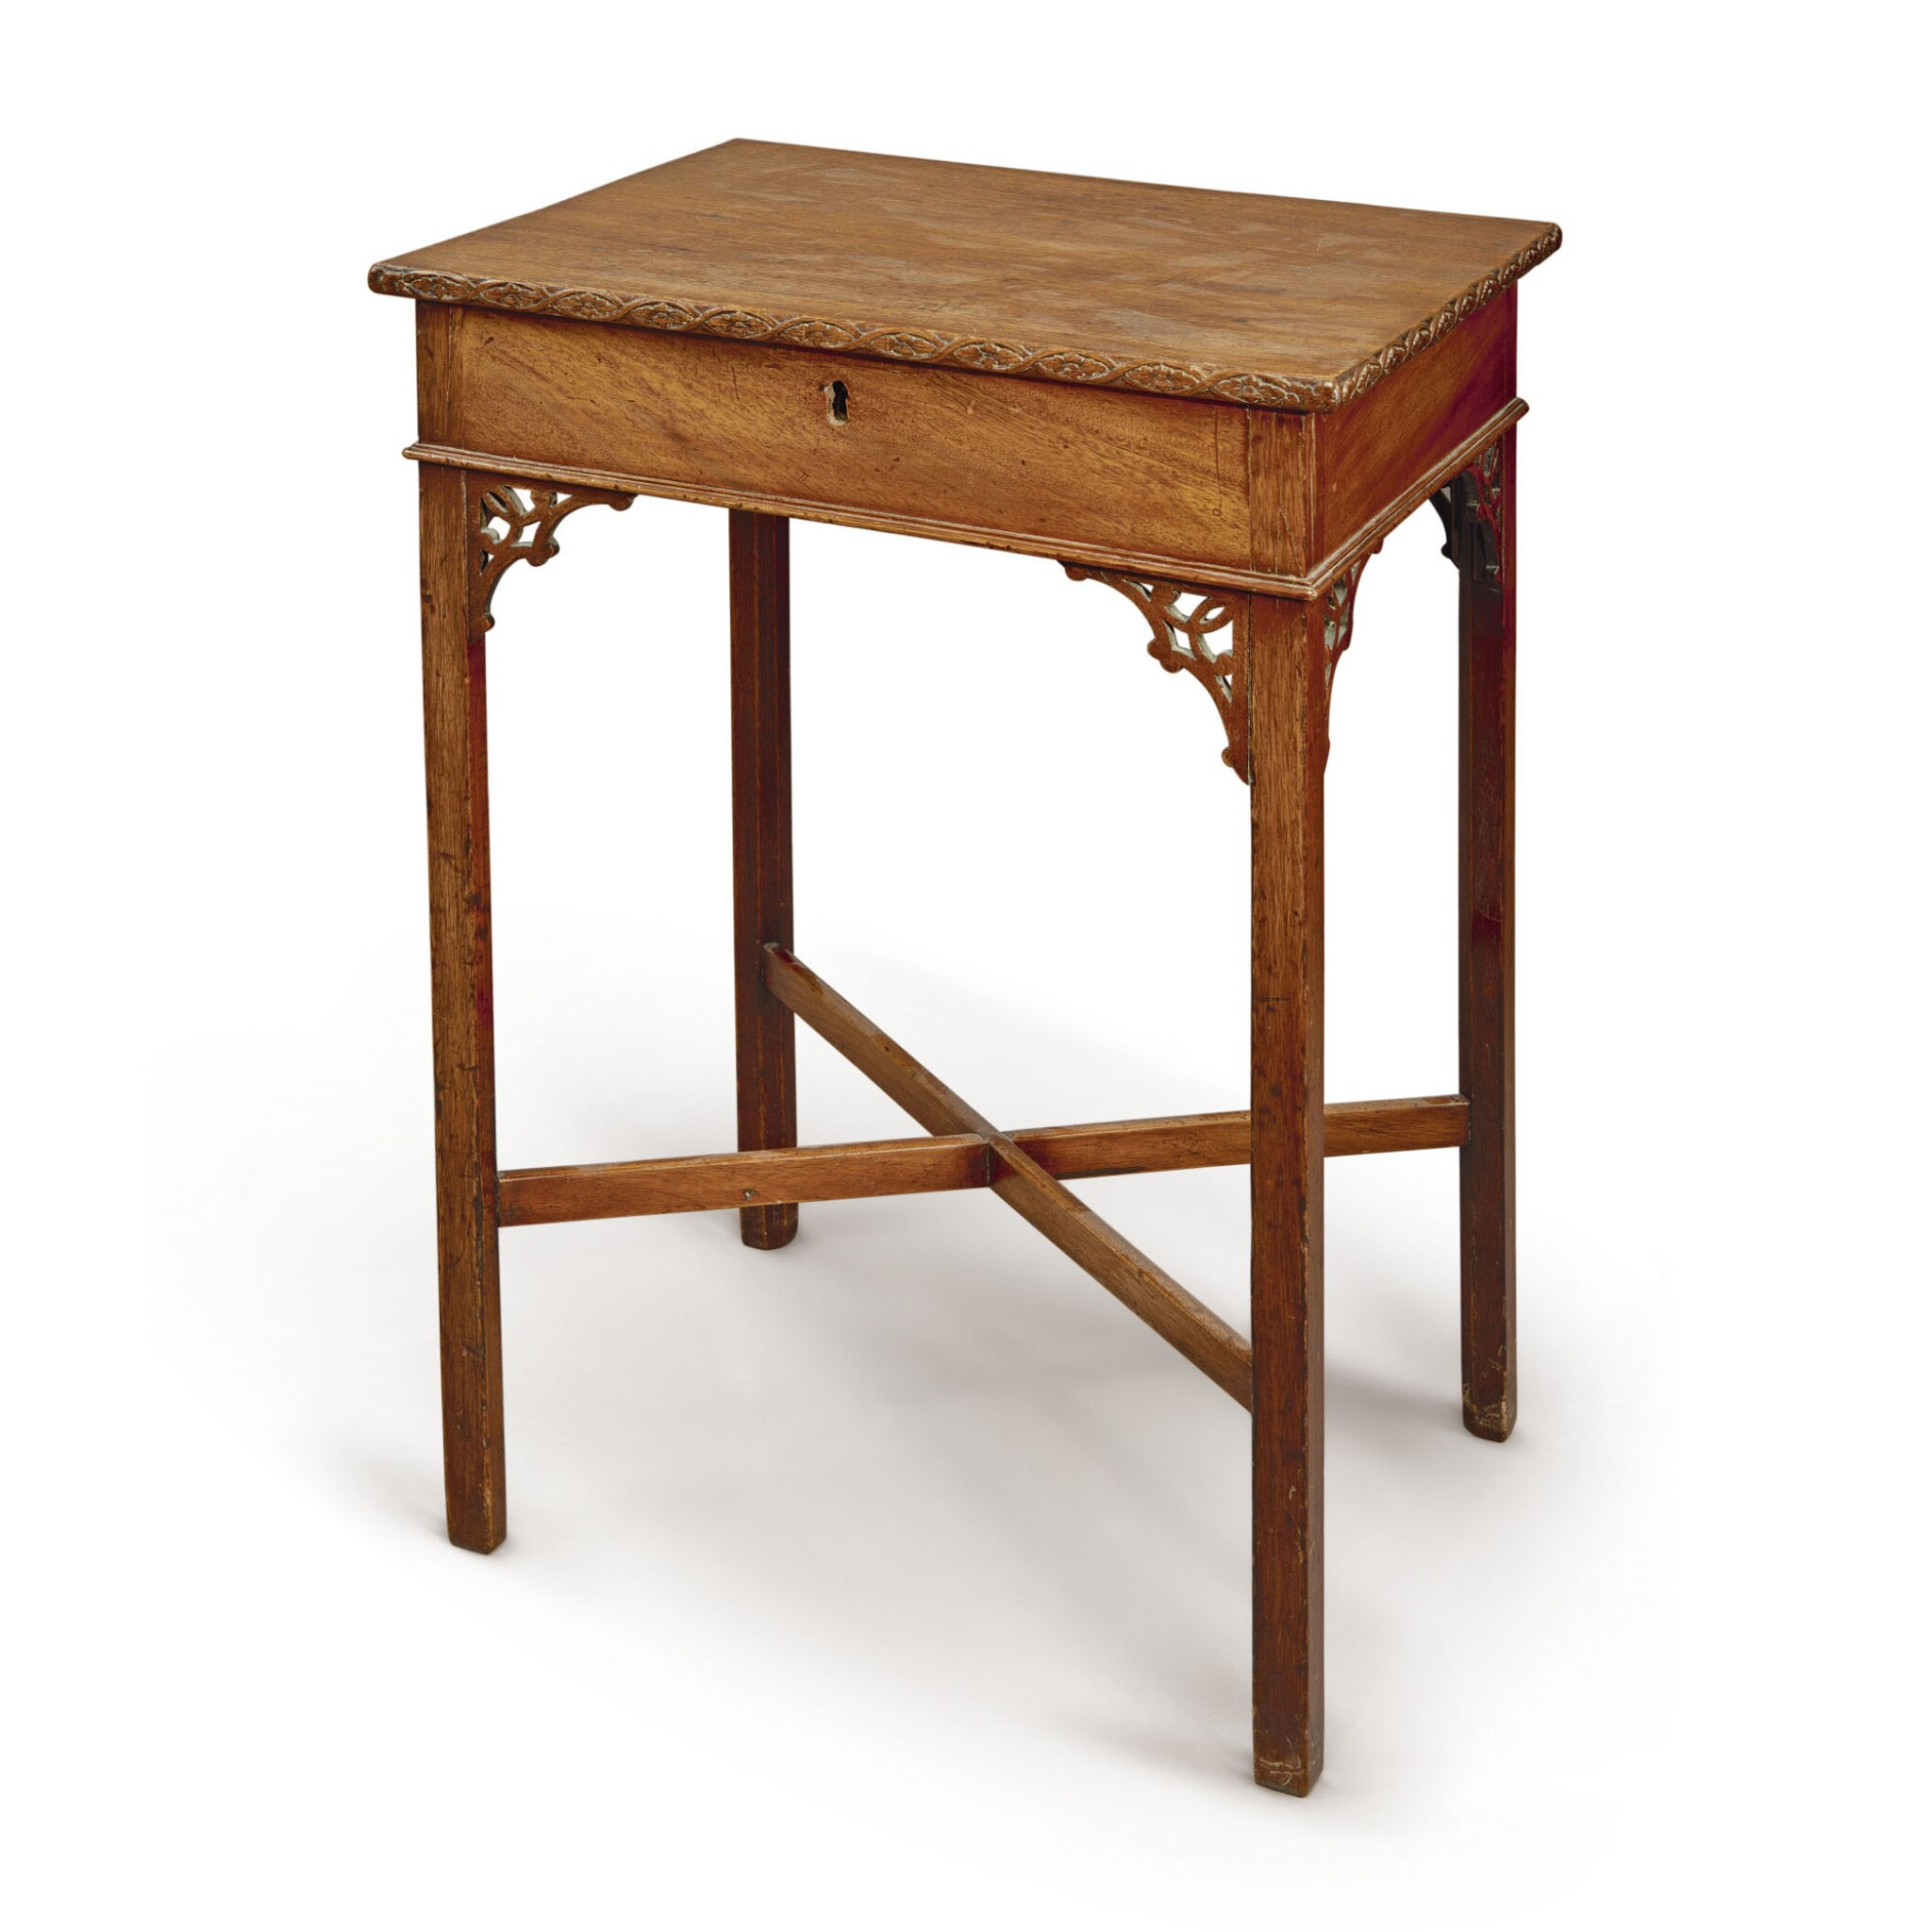 View full screen - View 1 of Lot 501. A GEORGE III MAHOGANY SIDE TABLE, THIRD QUARTER 18TH CENTURY.